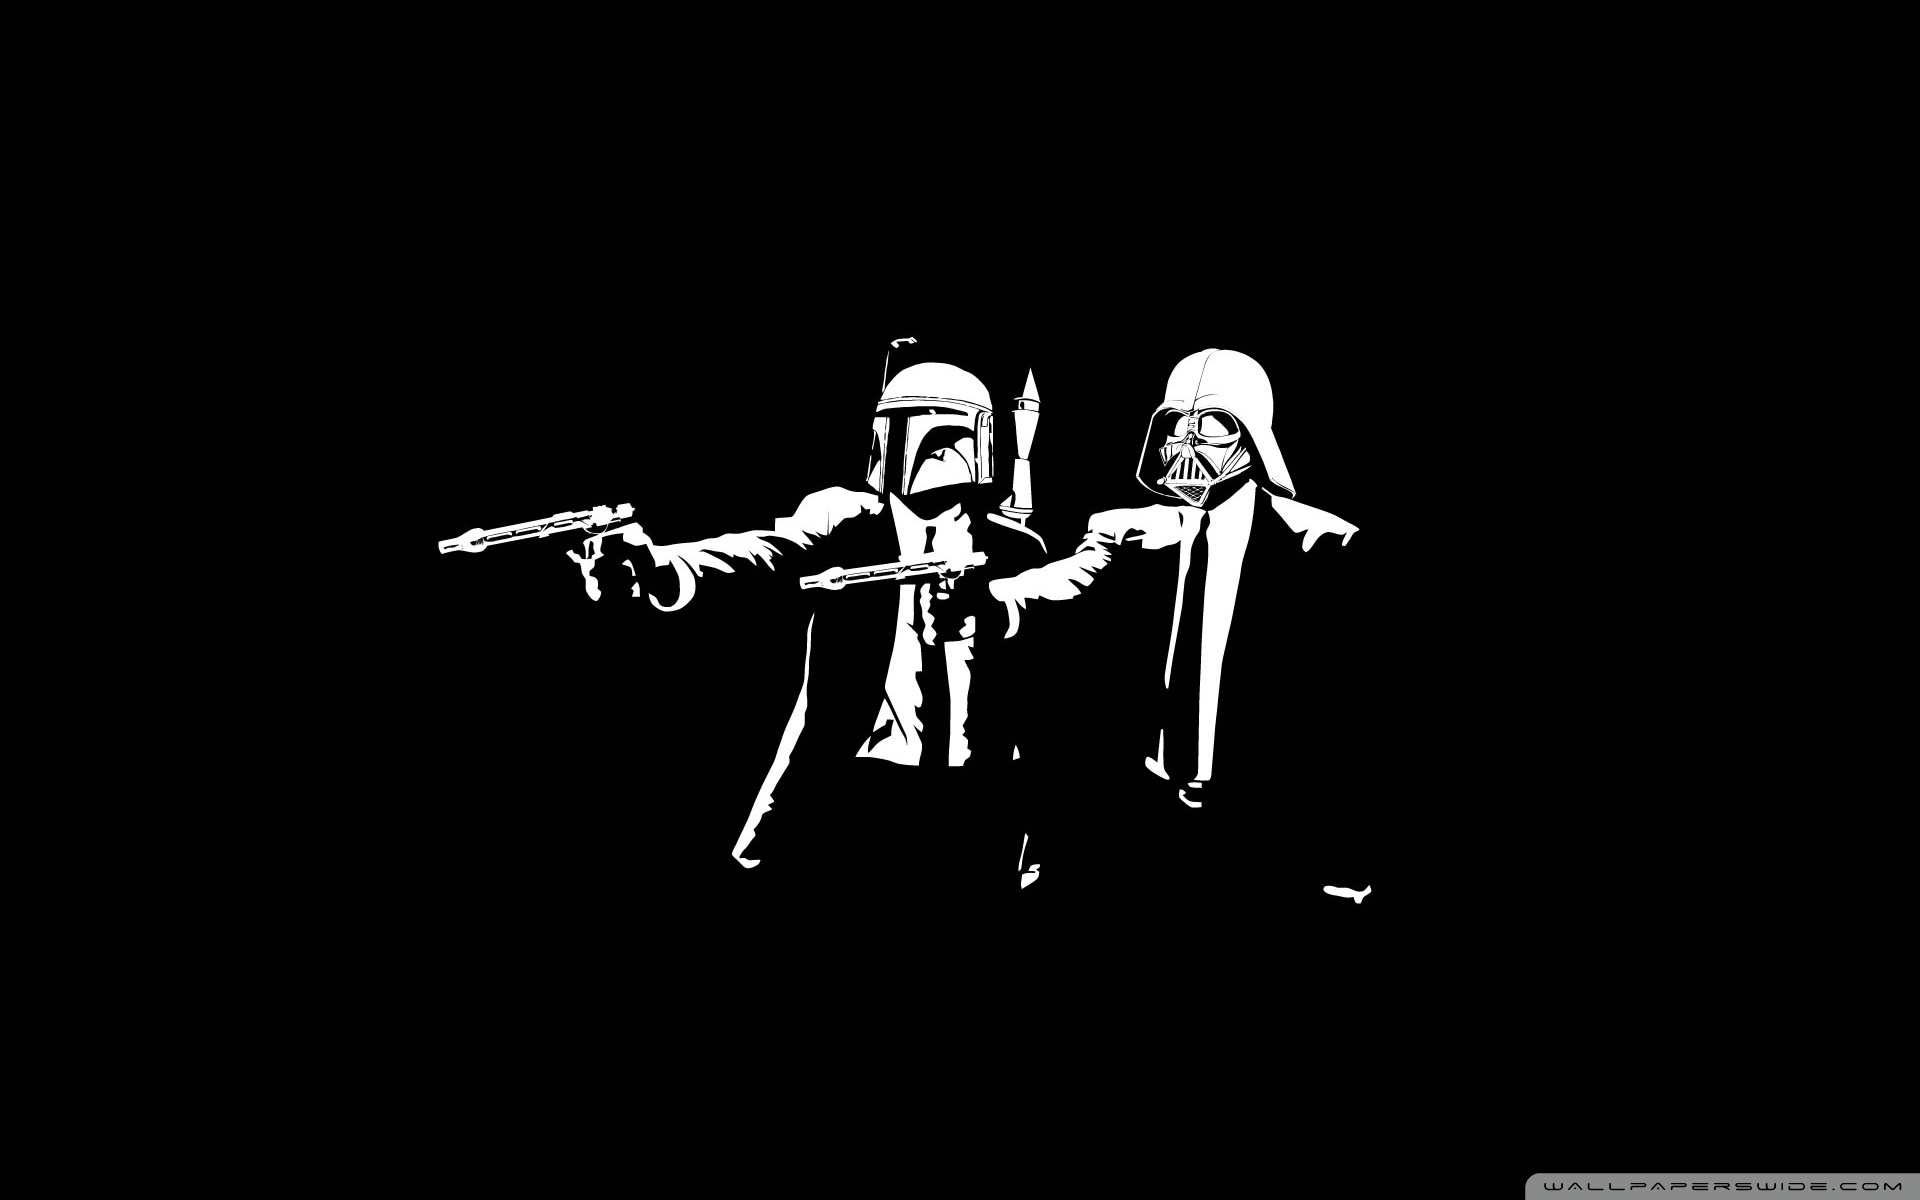 star wars pulp fiction ❤ 4k hd desktop wallpaper for 4k ultra hd tv